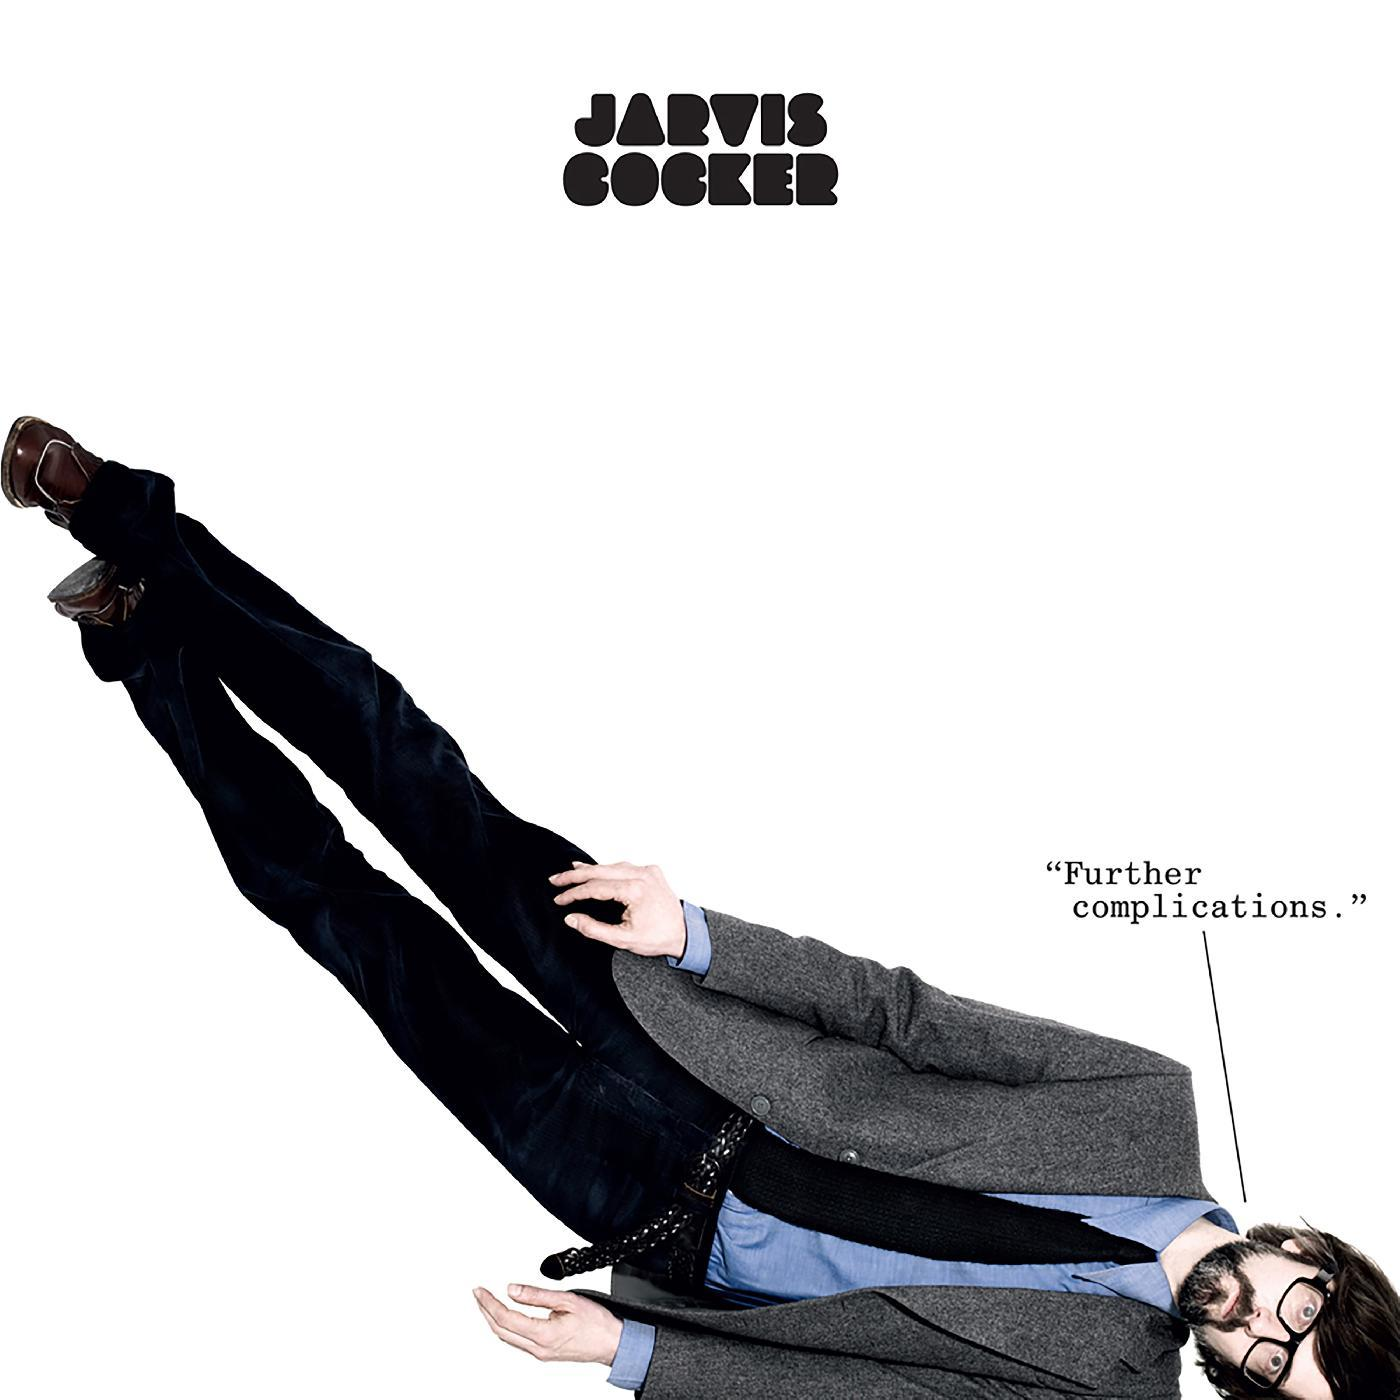 Jarvis Cocker - Further Complications (2020 Remaster)